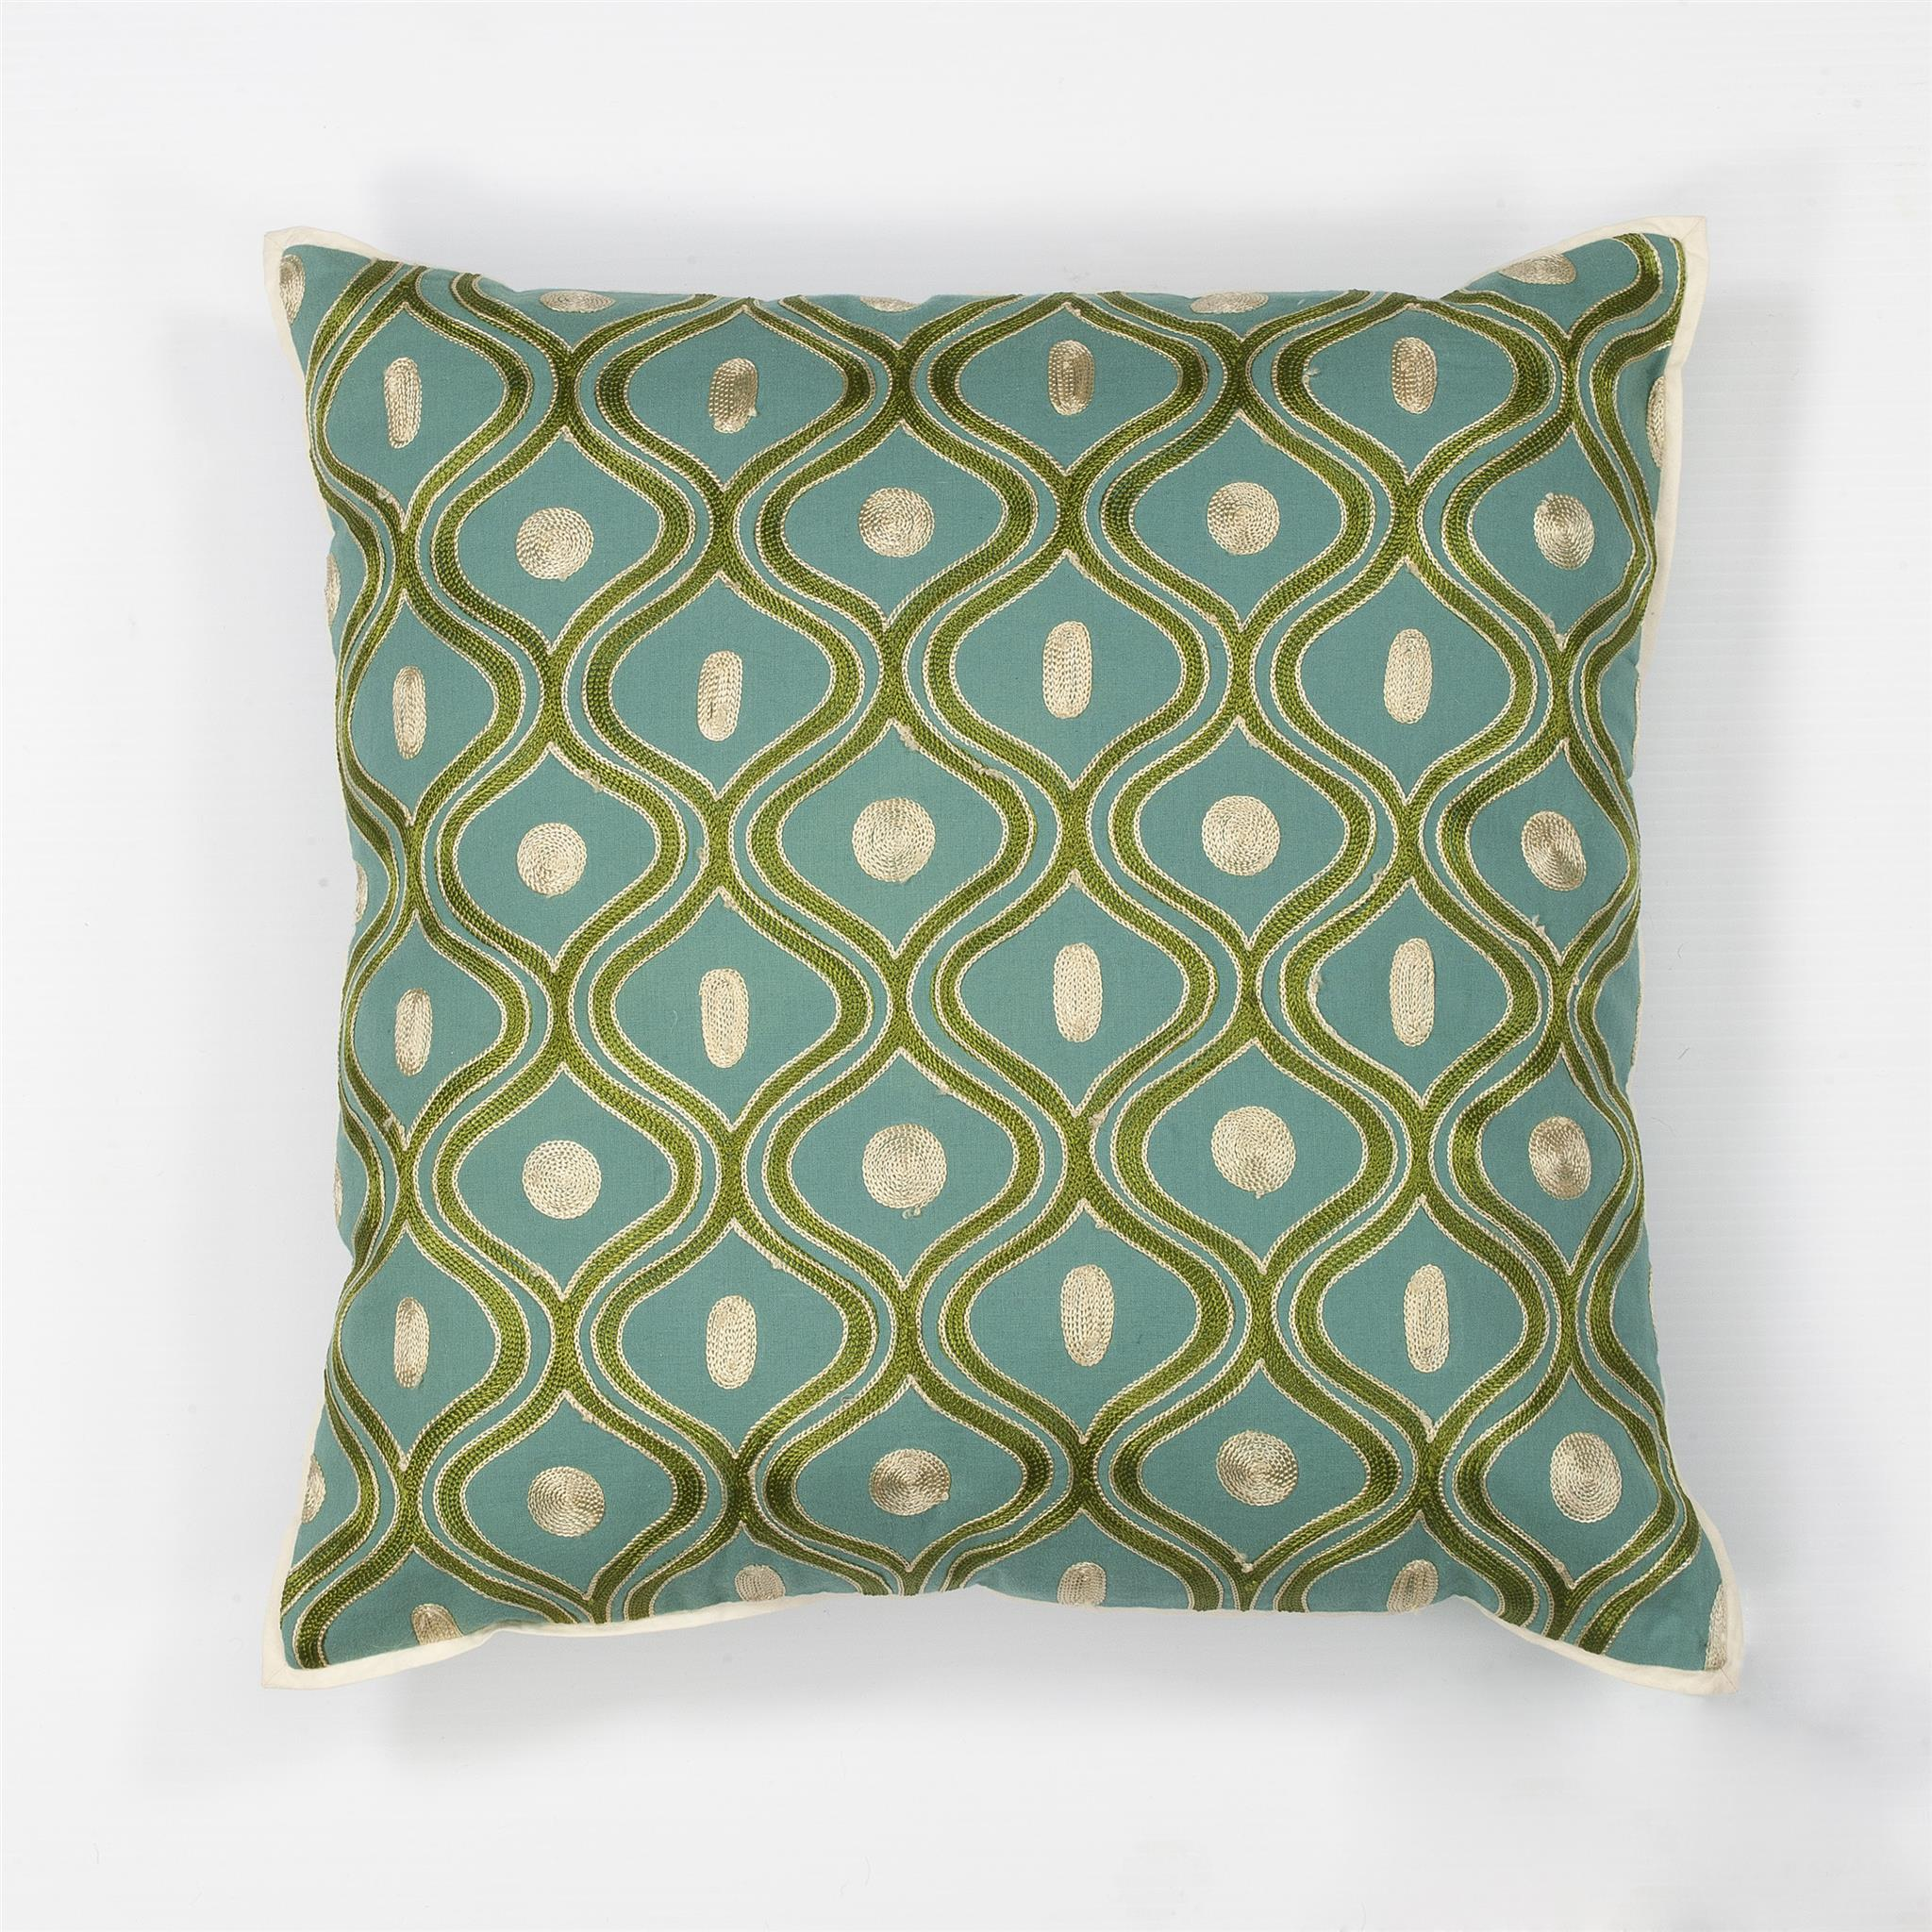 L106 Teal/Gold Gramercy Pillow